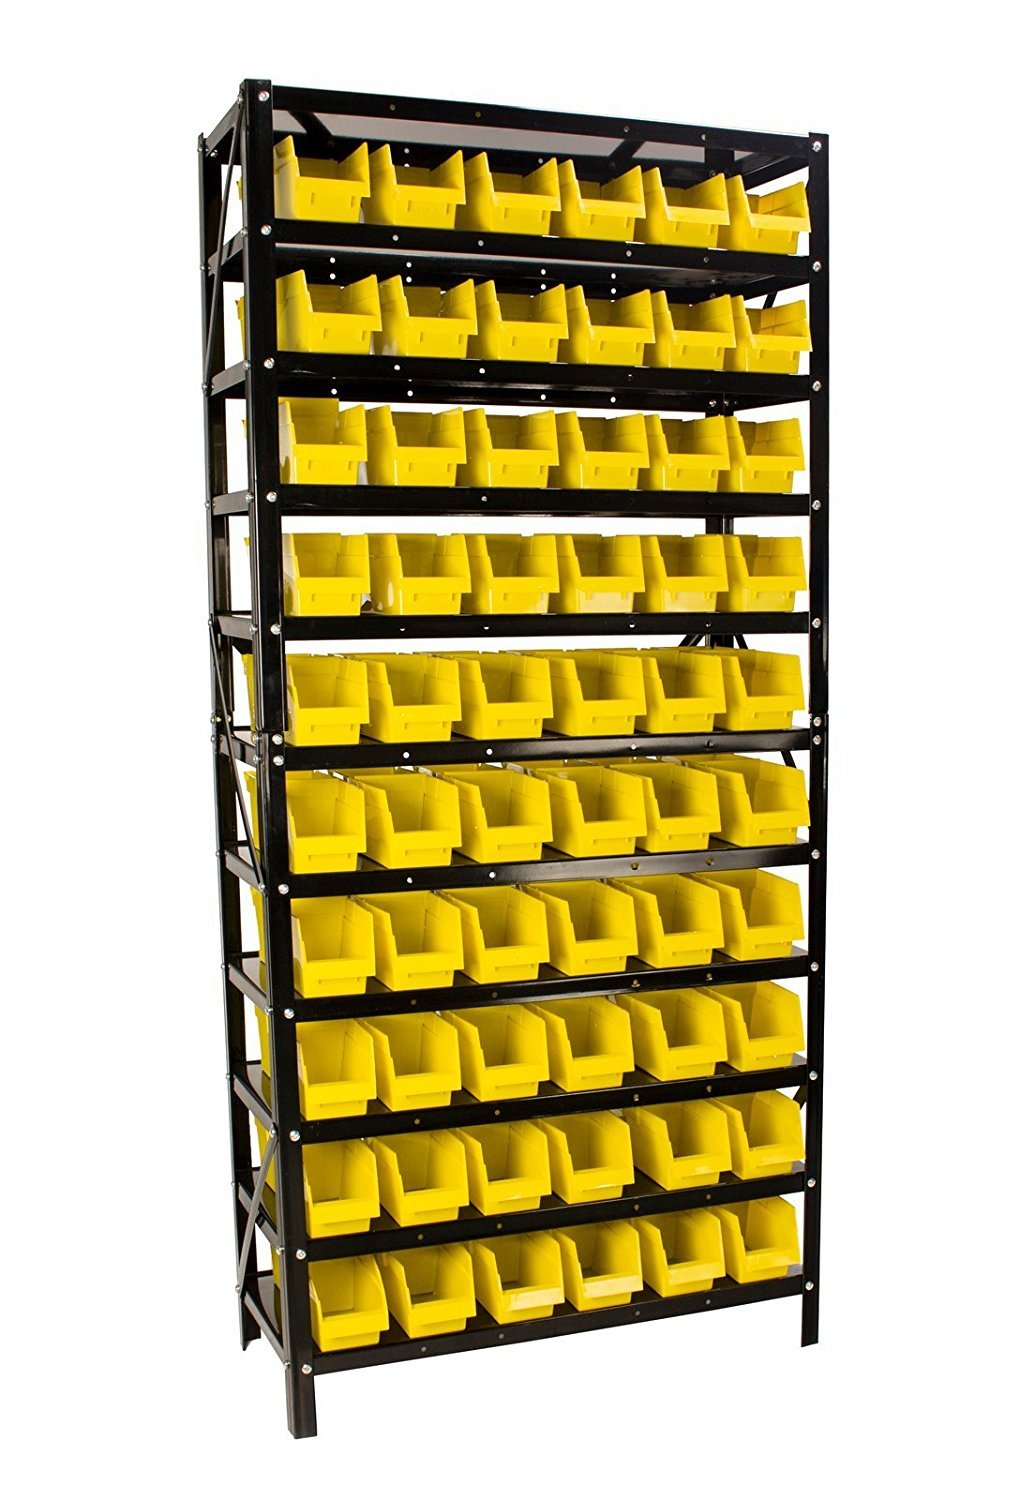 60 Bin Parts Rack easily Organize Nuts, Bolts, or Parts, Removable Parts Bins with Dividers Erie Tools